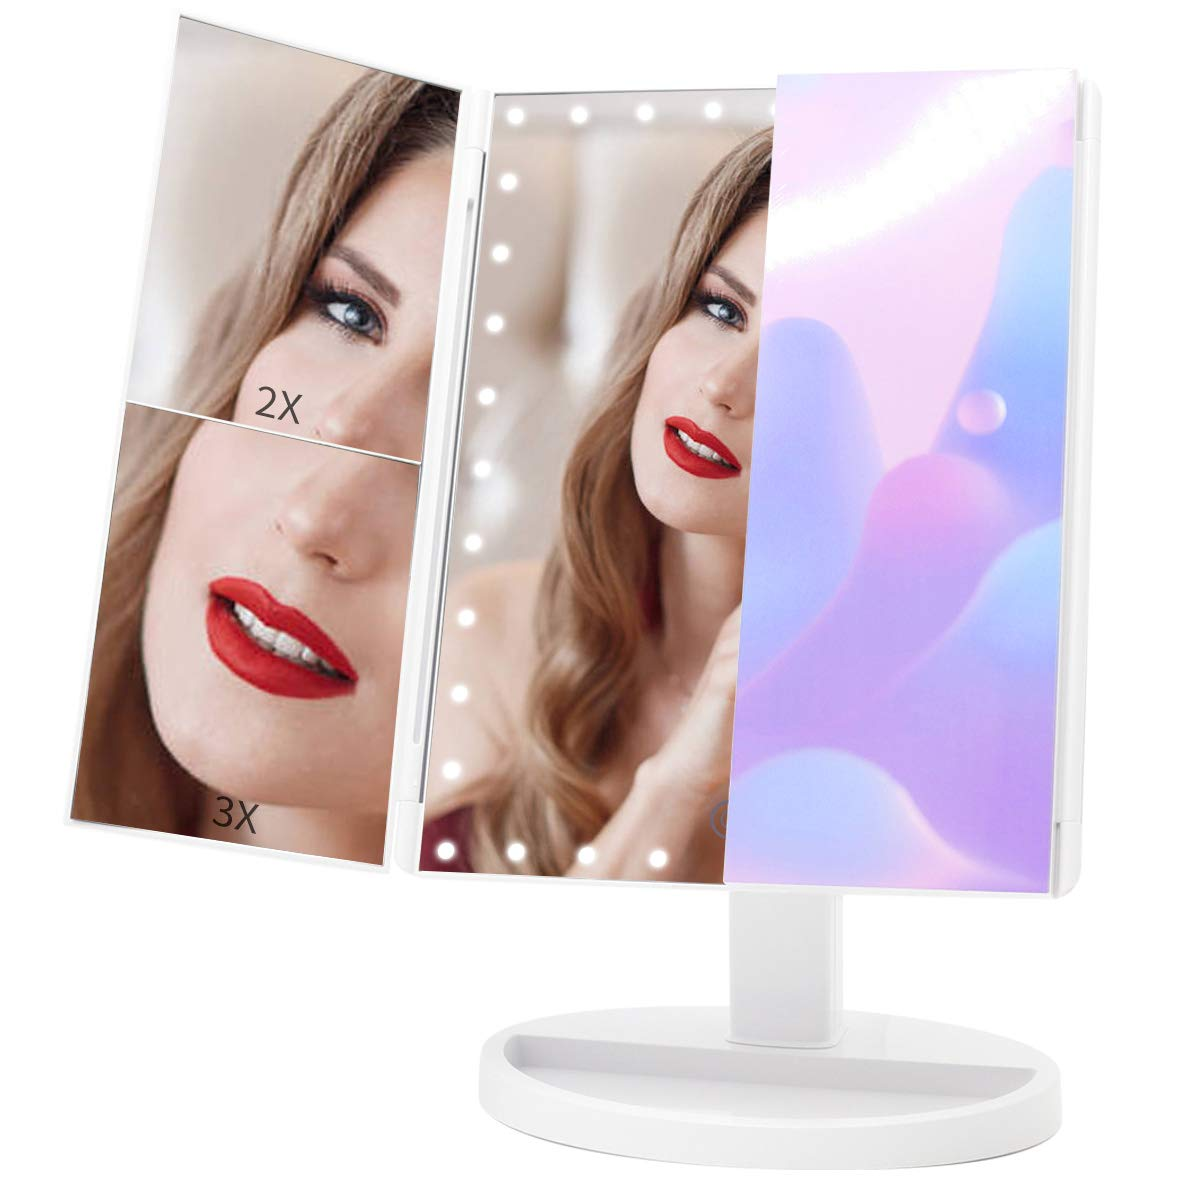 Large Makeup Vanity Mirror with Lights, COSMIRROR Trifold Lighted Makeup Mirror with 35 LED and Touch Screen Dimming, 2X 3X Magnification, 360 Rotation, High Definition Cosmetic Lighted Up Mirror